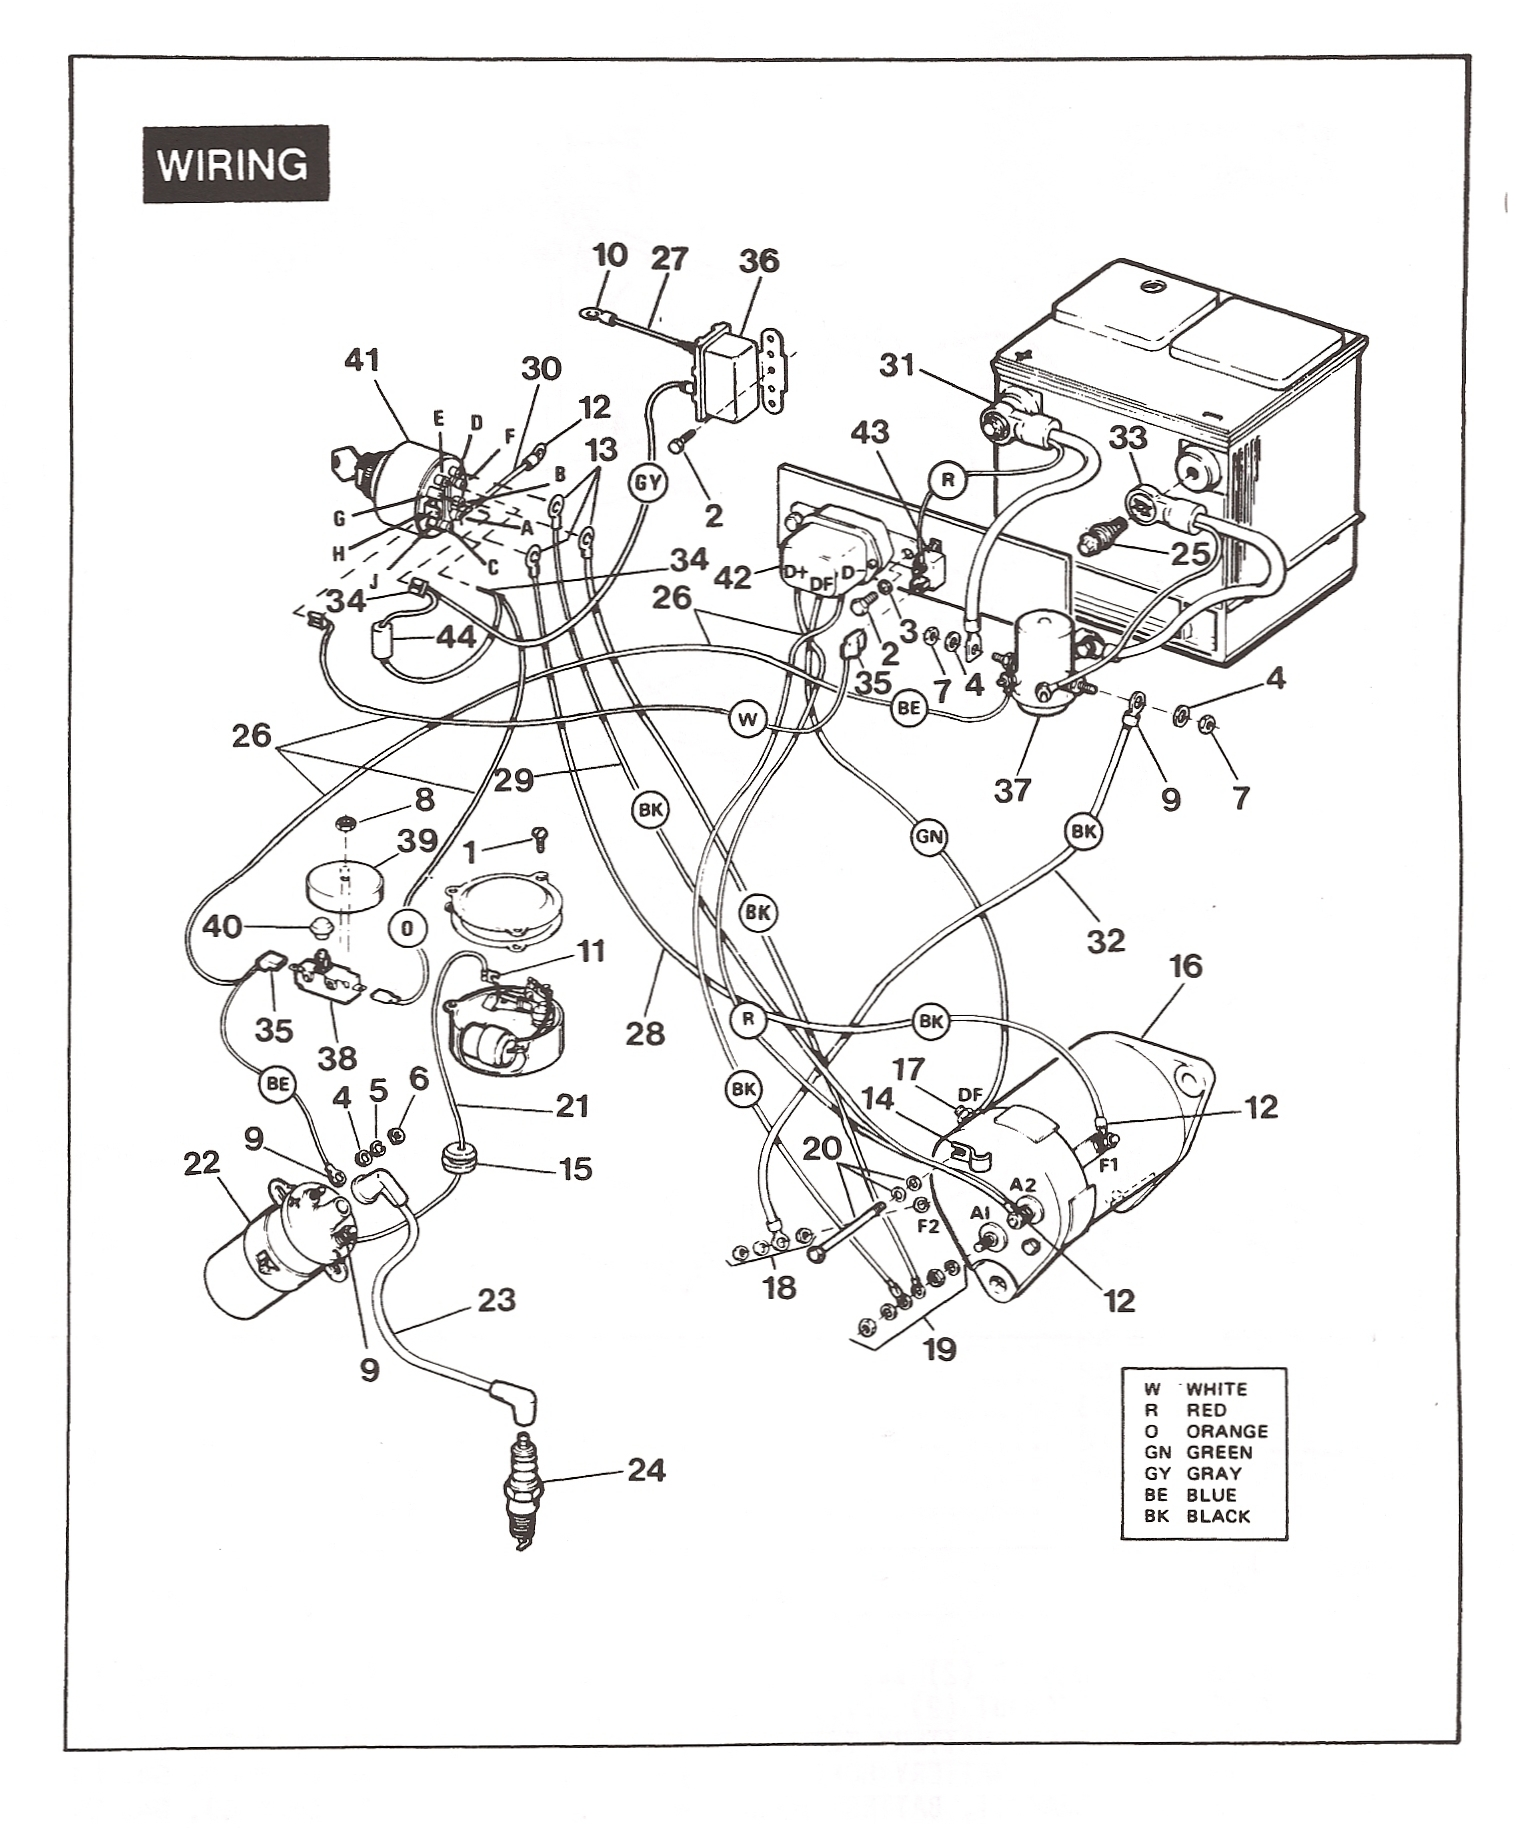 82_86_Columbia_Harley yamaha wiring diagrams readingrat net amf harley davidson golf cart wiring diagram at virtualis.co